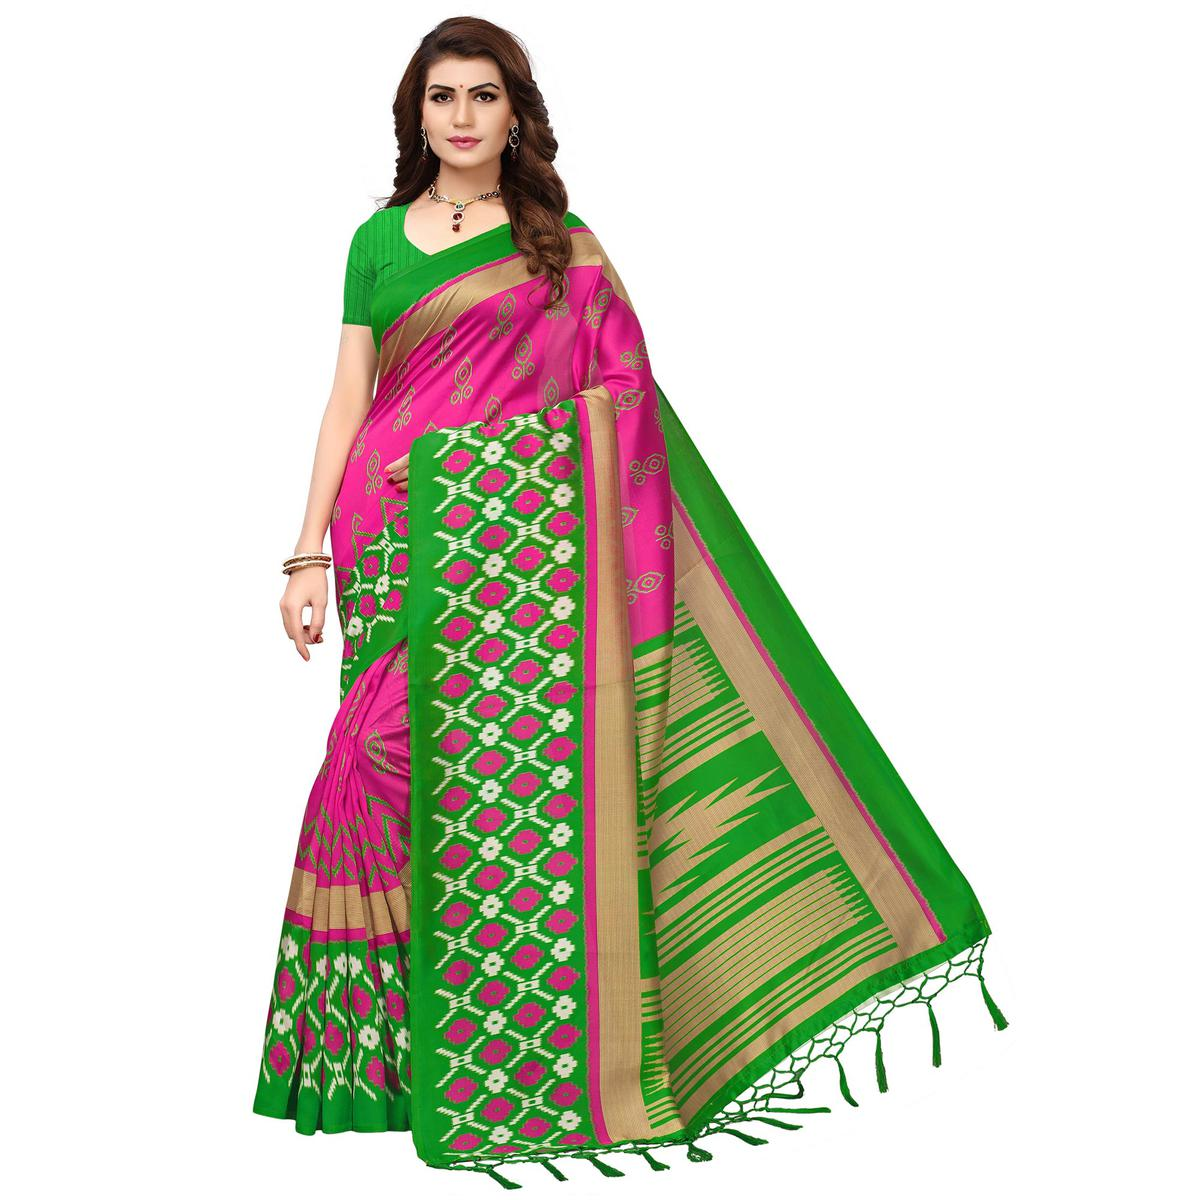 Groovy Pink-Green Colored Printed Festive Wear Mysore Art Silk Saree